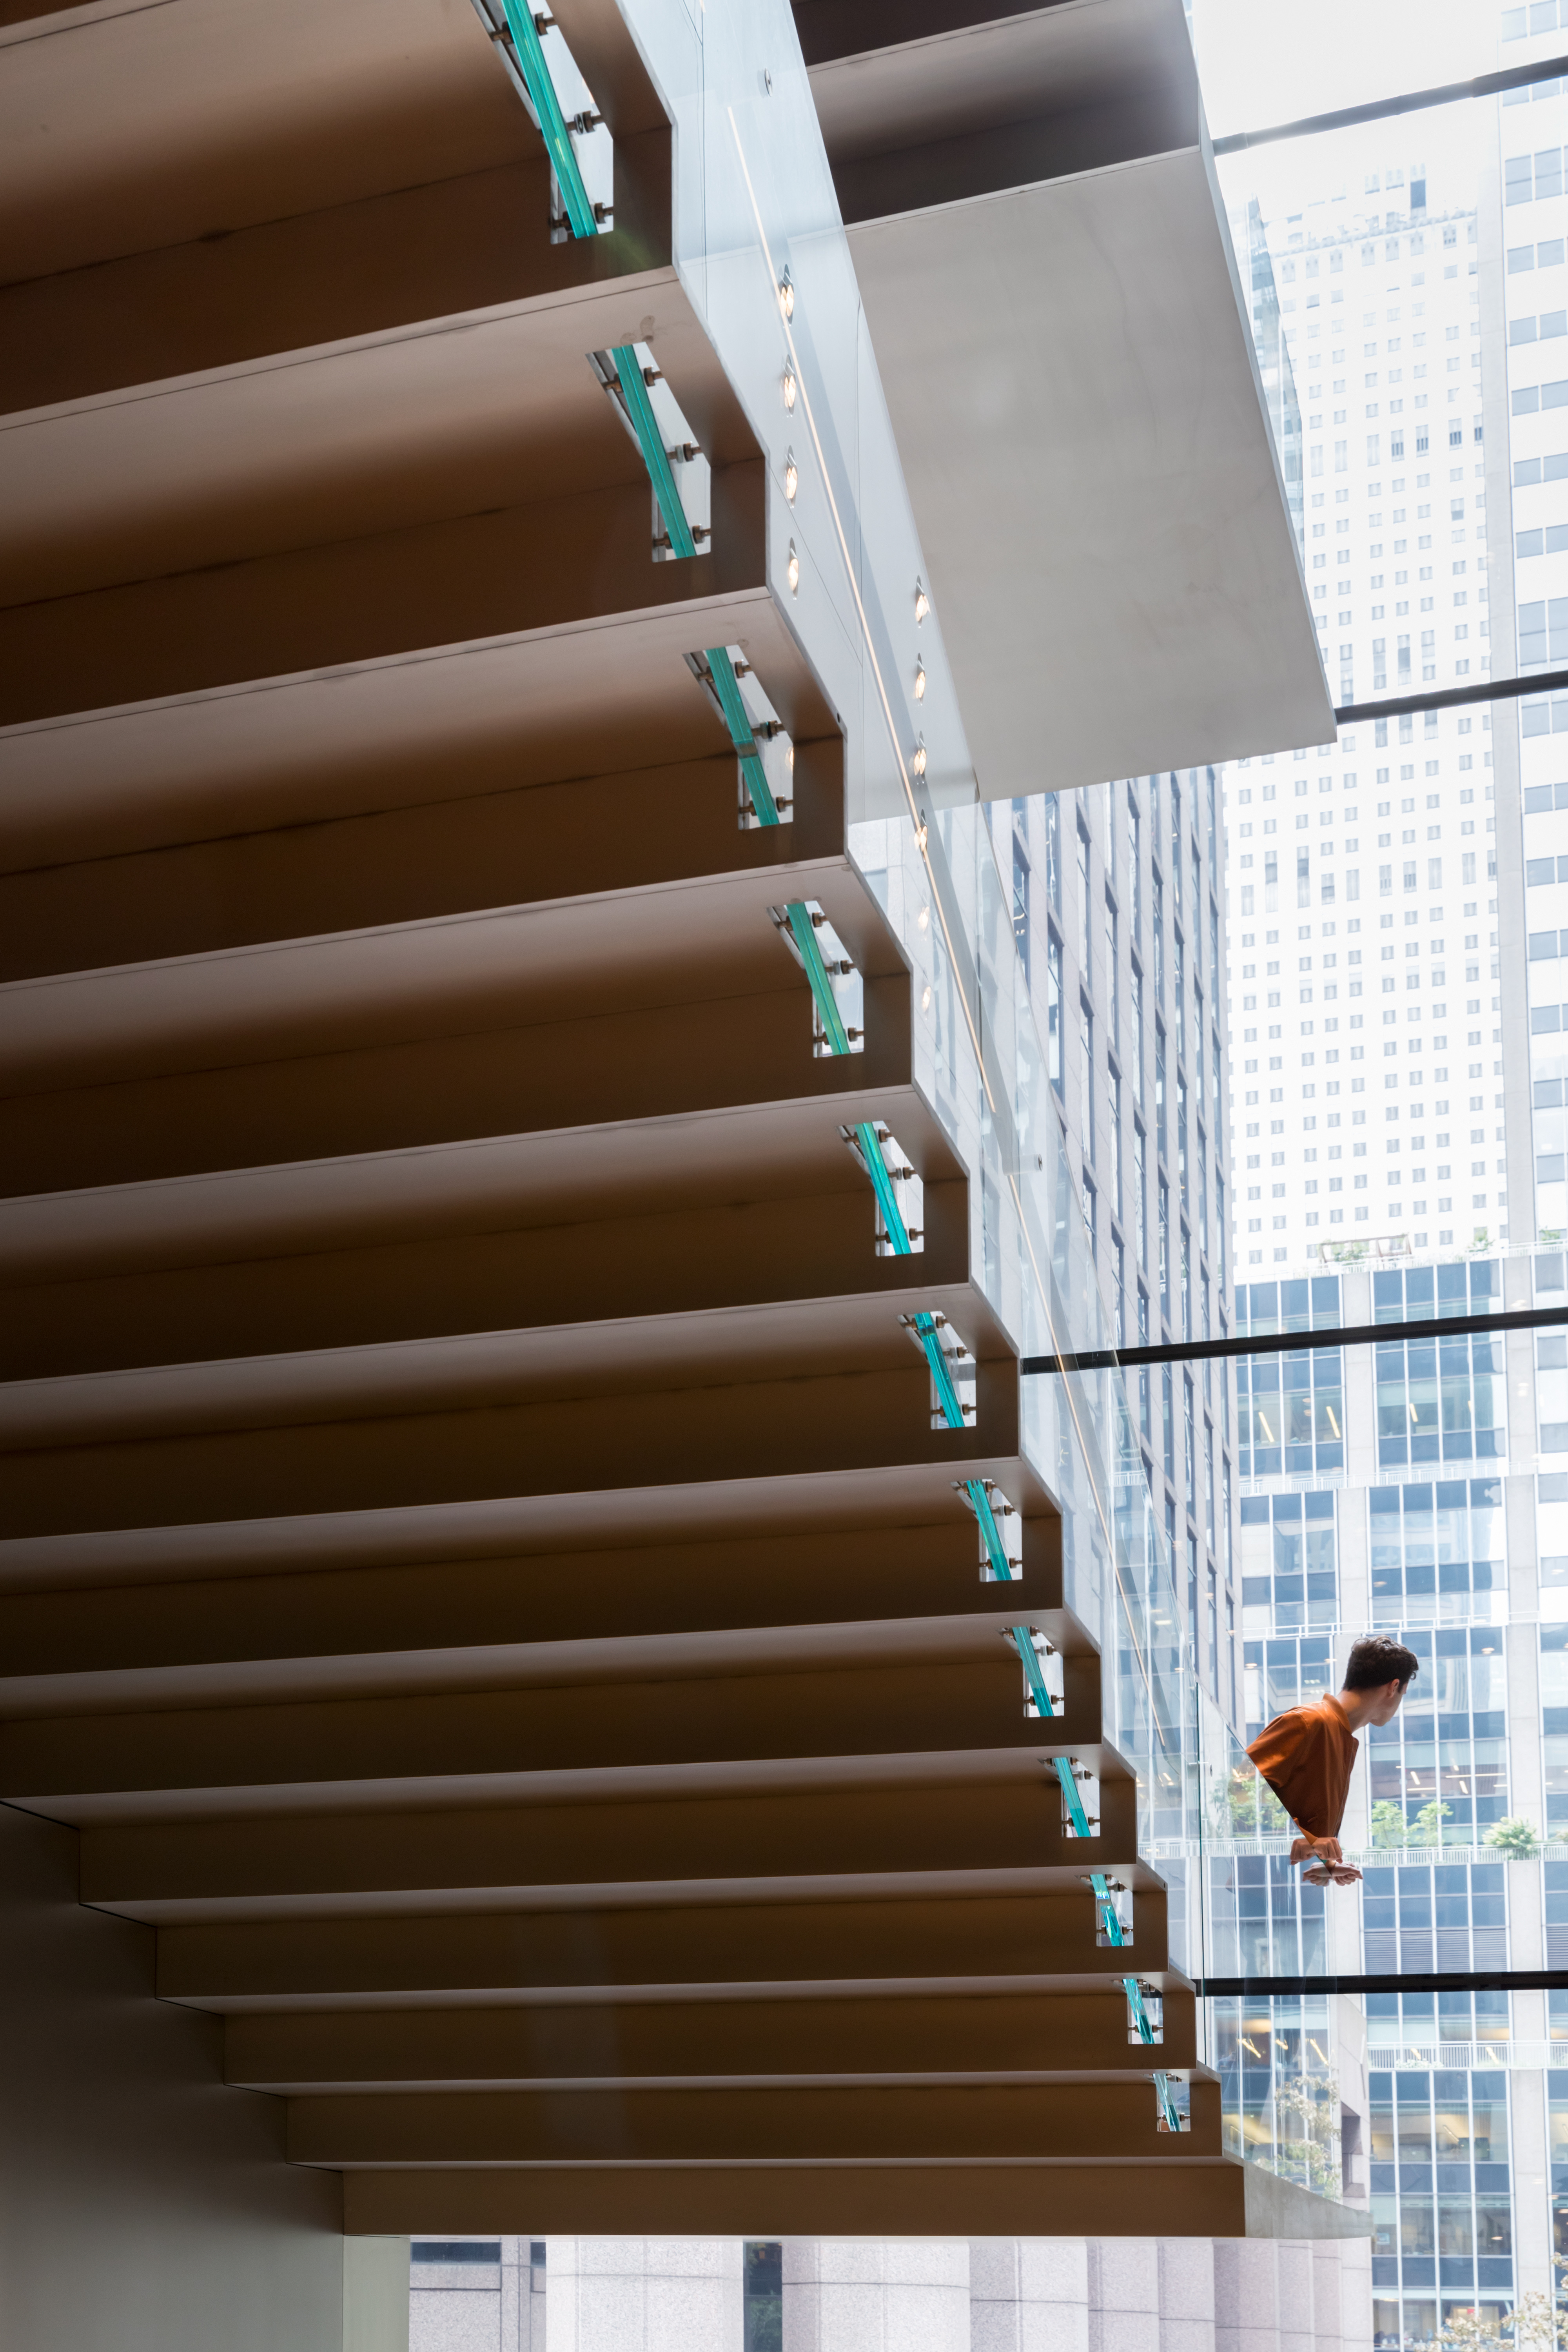 <p>MoMa Fase 2. Interior view of The Museum of Modern Art Lobby, West Connector Beeld Iwan Baan. Courtesey of MoMa</p>